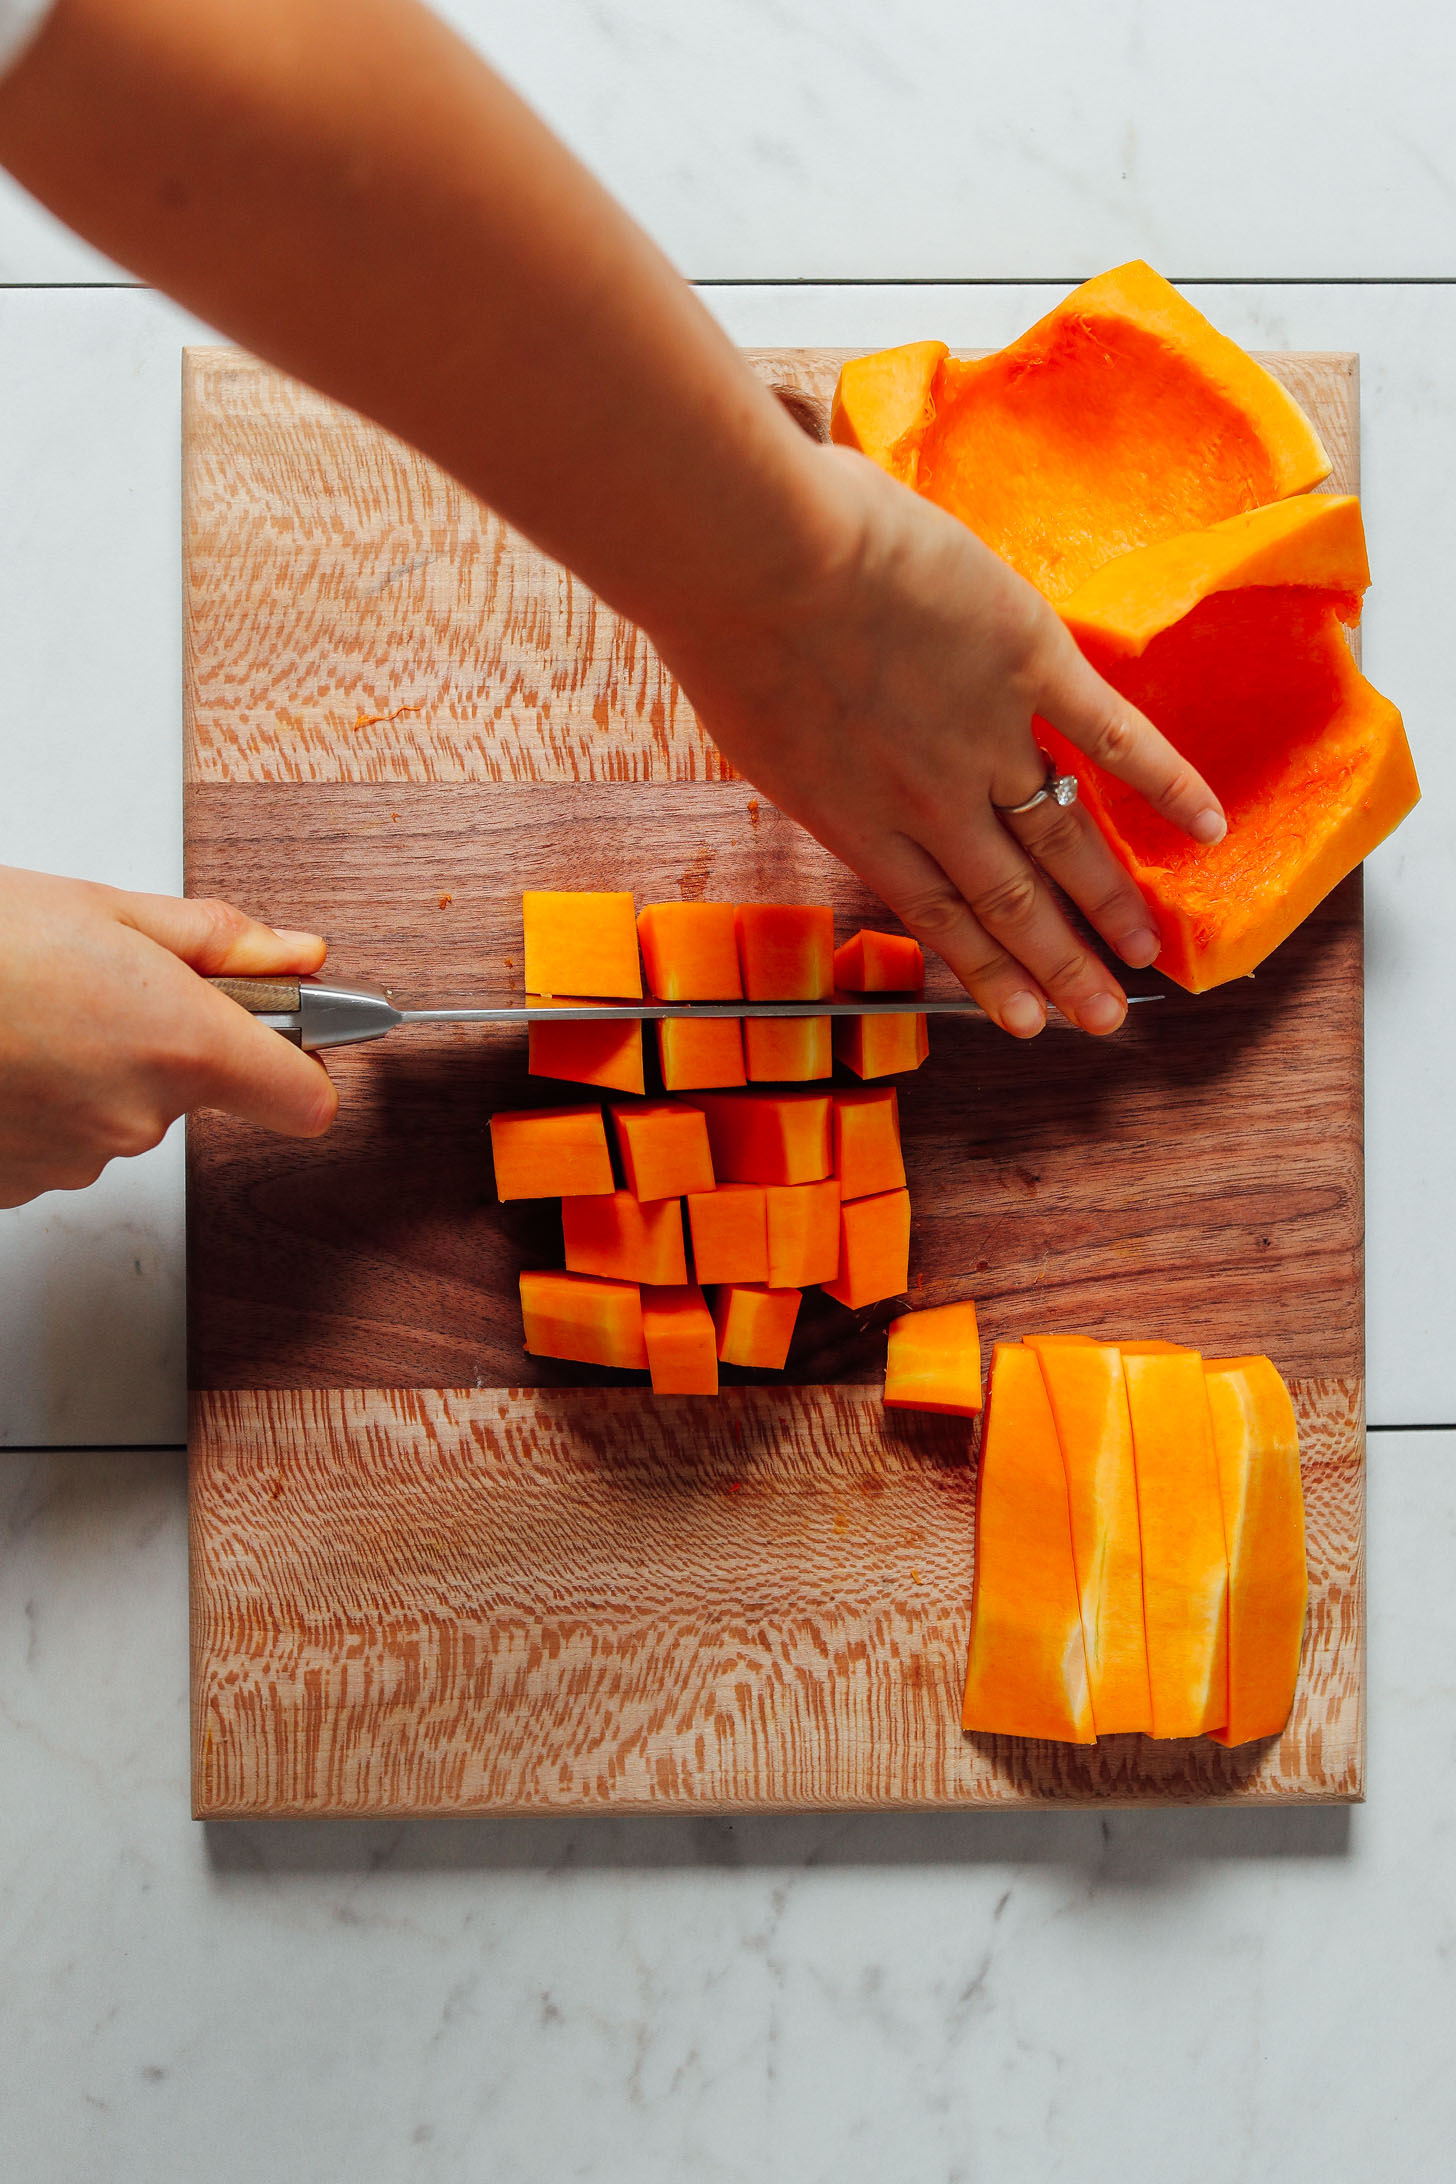 Cutting strips of butternut squash into cubes on a wood cutting board